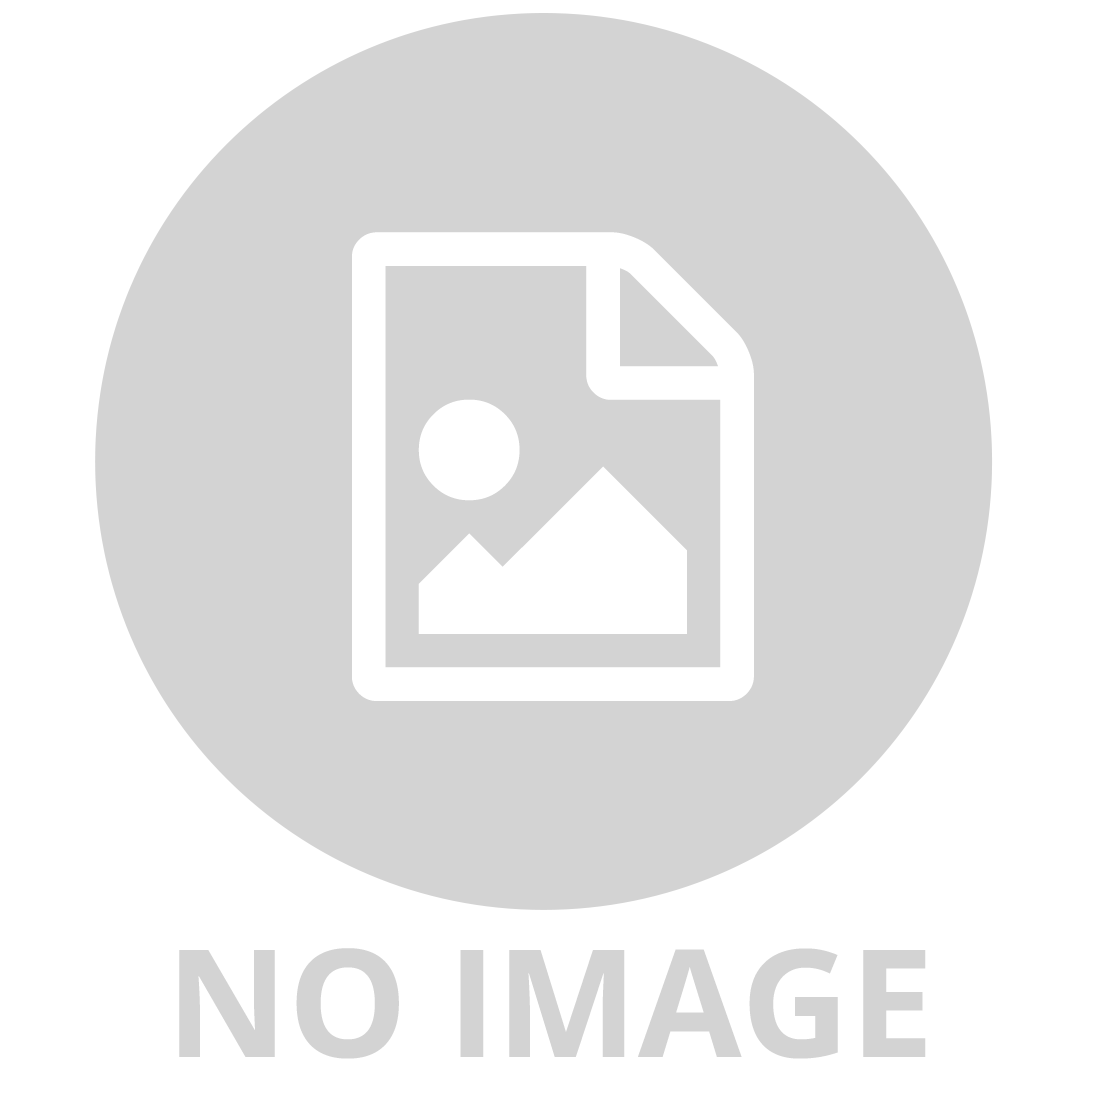 WALTHERS N GAUGE ICE HOUSE AND ICING PLATFORM